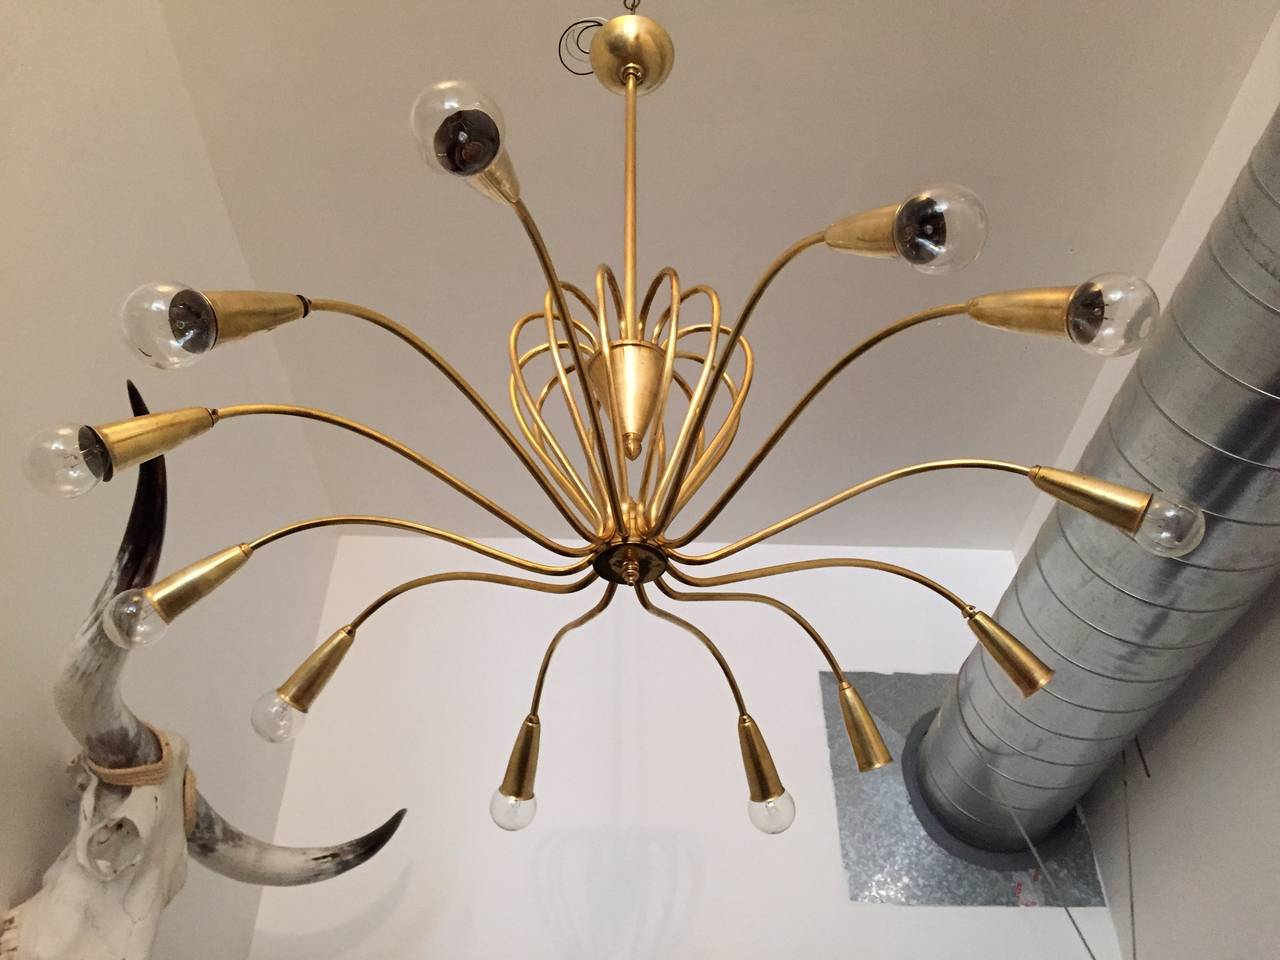 Mid-20th Century Italian 1950s Chandelier For Sale